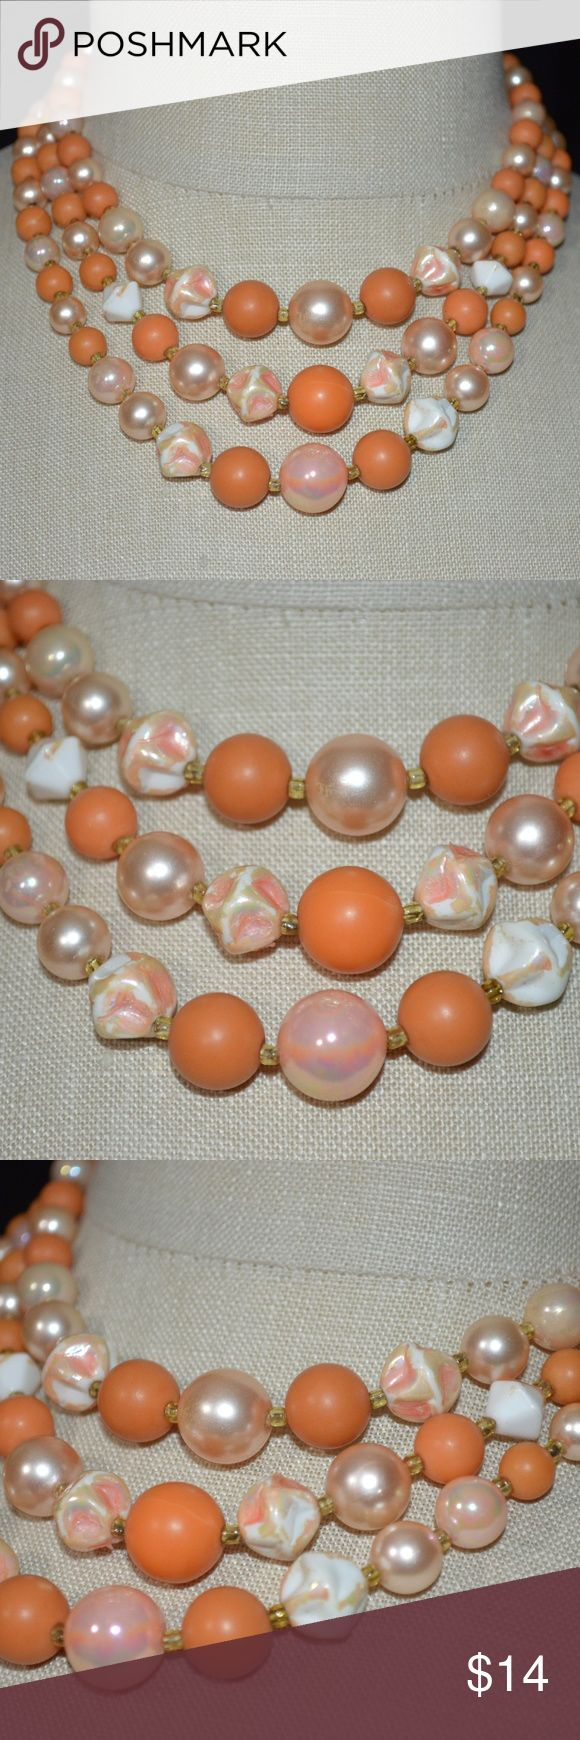 Vintage Japan Orange Peach Necklace Estate Fresh  Vintage JAPAN Orange Peach Multi Strand Beaded Crystal Gold Tone Choker Necklace  Appears clasp has been repaired 15.5 inch in length Japan Jewelry Necklaces